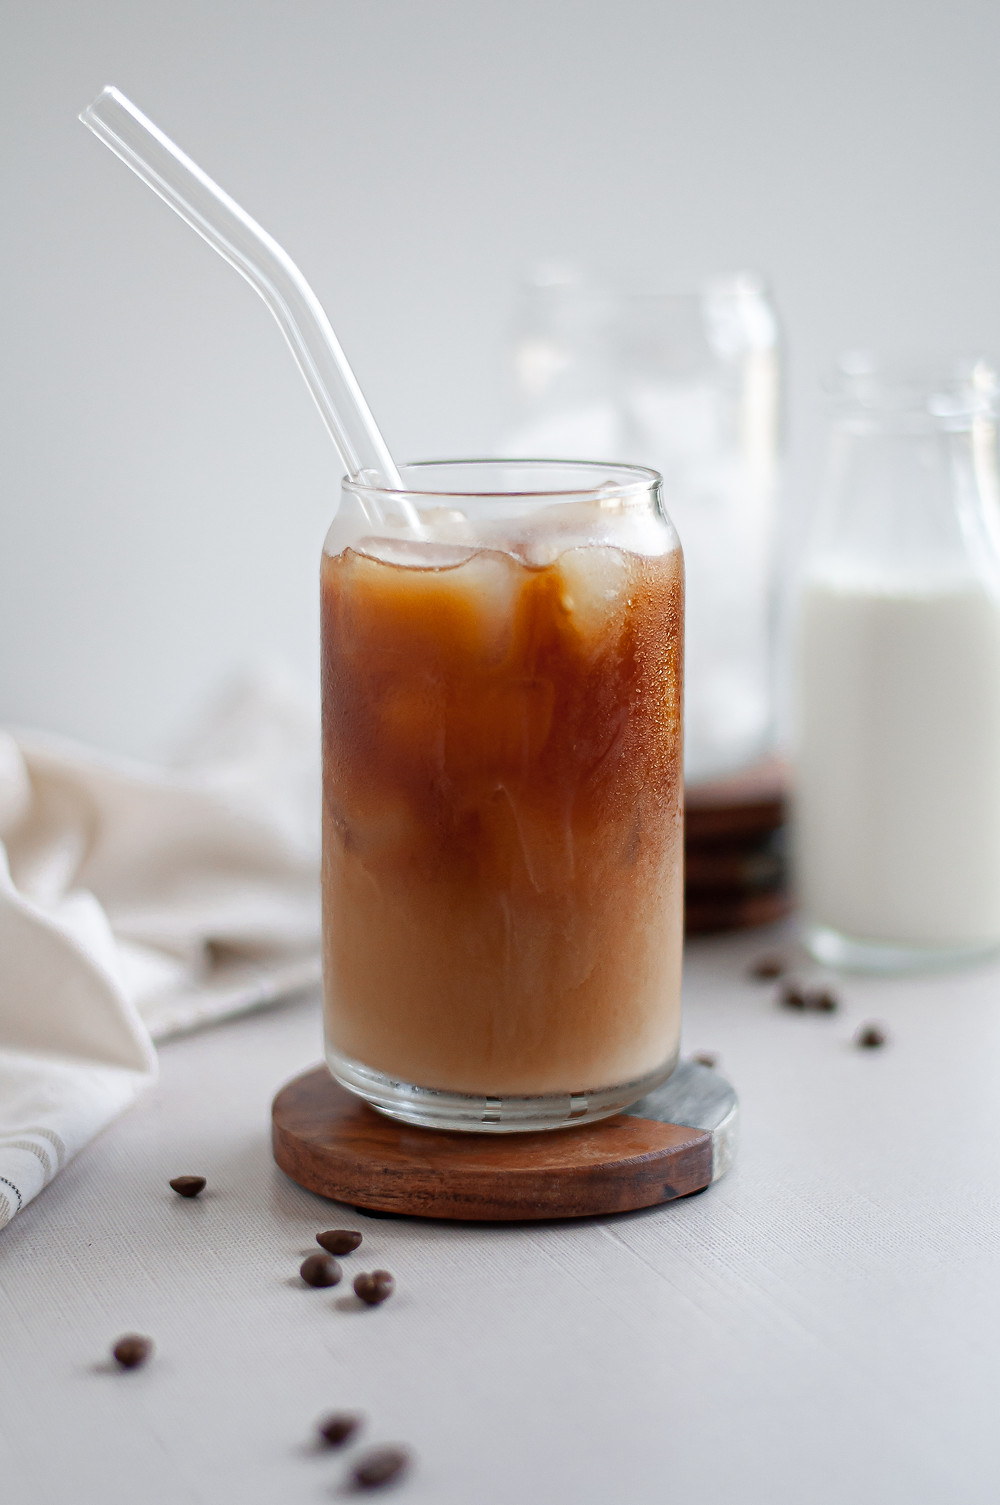 Icy glass of homemade cold brew coffee, served with milk and ready to drink with a straw